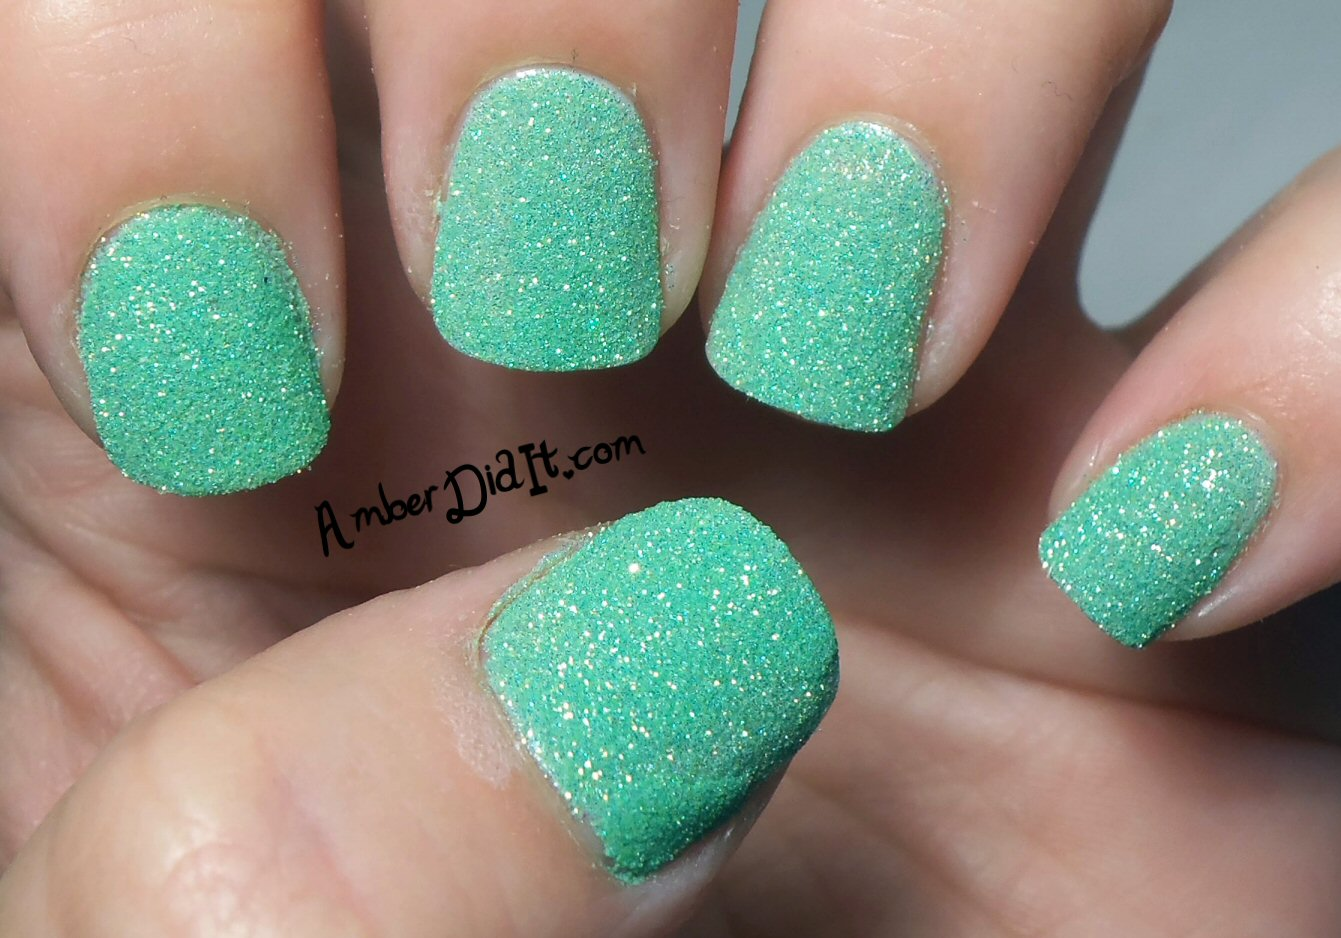 20 Glitter Nail Designs For The Everyday Glamazon